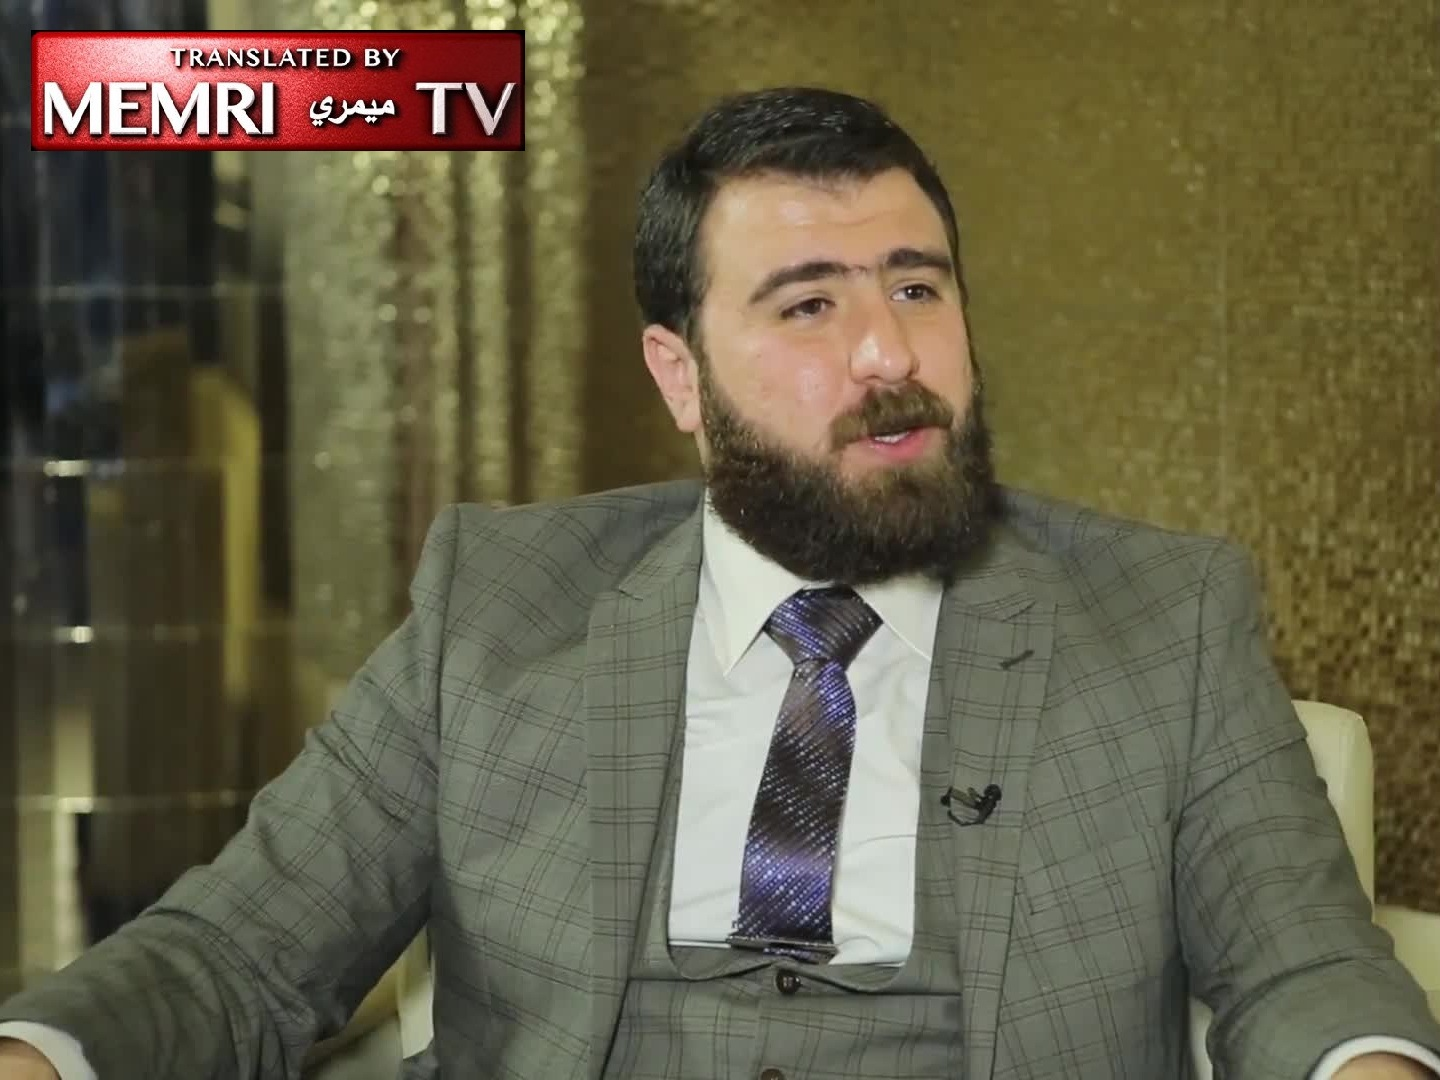 Christian Iraqi Militia Leader Ryan Chaldean: If Not For Iran, ISIS Would Be in Baghdad by Now; Saudi Arabia the Cause of Iraq's Destruction